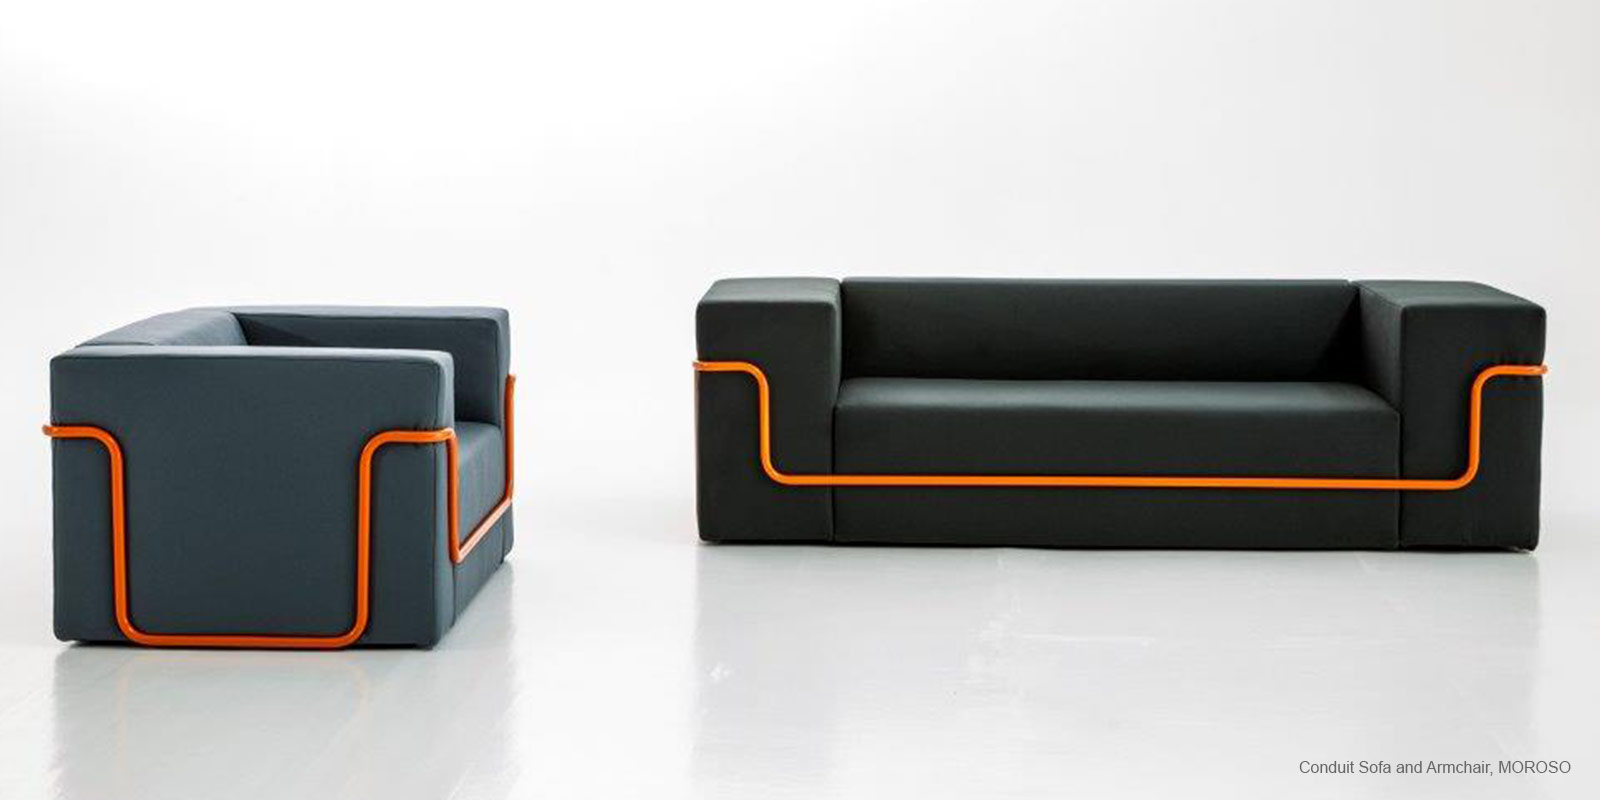 Conduit Sofa and Armchair, MOROSO